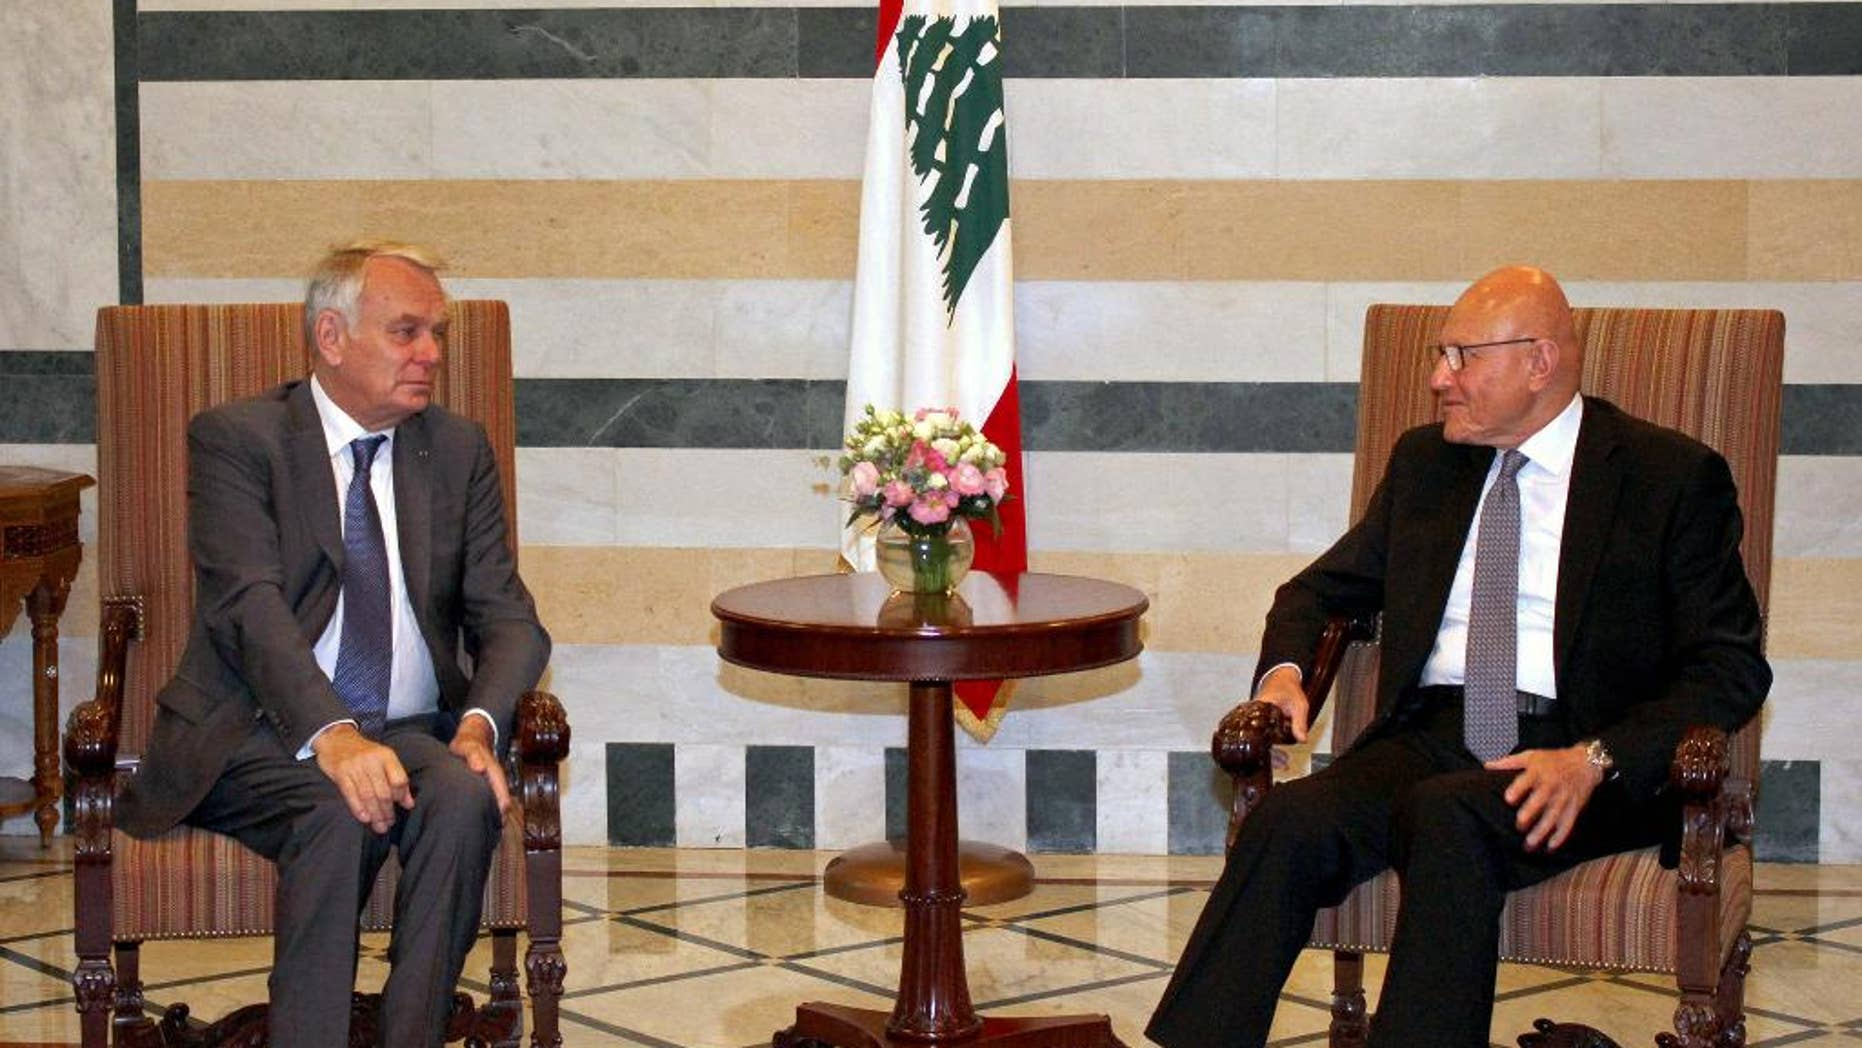 In this photo released by Lebanon's official government photographer Dalati Nohra, Lebanese Prime Minister Tammam Salam, right, meets with French Foreign Minister Jean-Marc Ayrault, left, at the government House, in Beirut, Lebanon, Tuesday, July 12, 2016. Ayrault said his country will do everything it can to help Lebanon emerge from its political stalemate. (Dalati Nohra via AP)